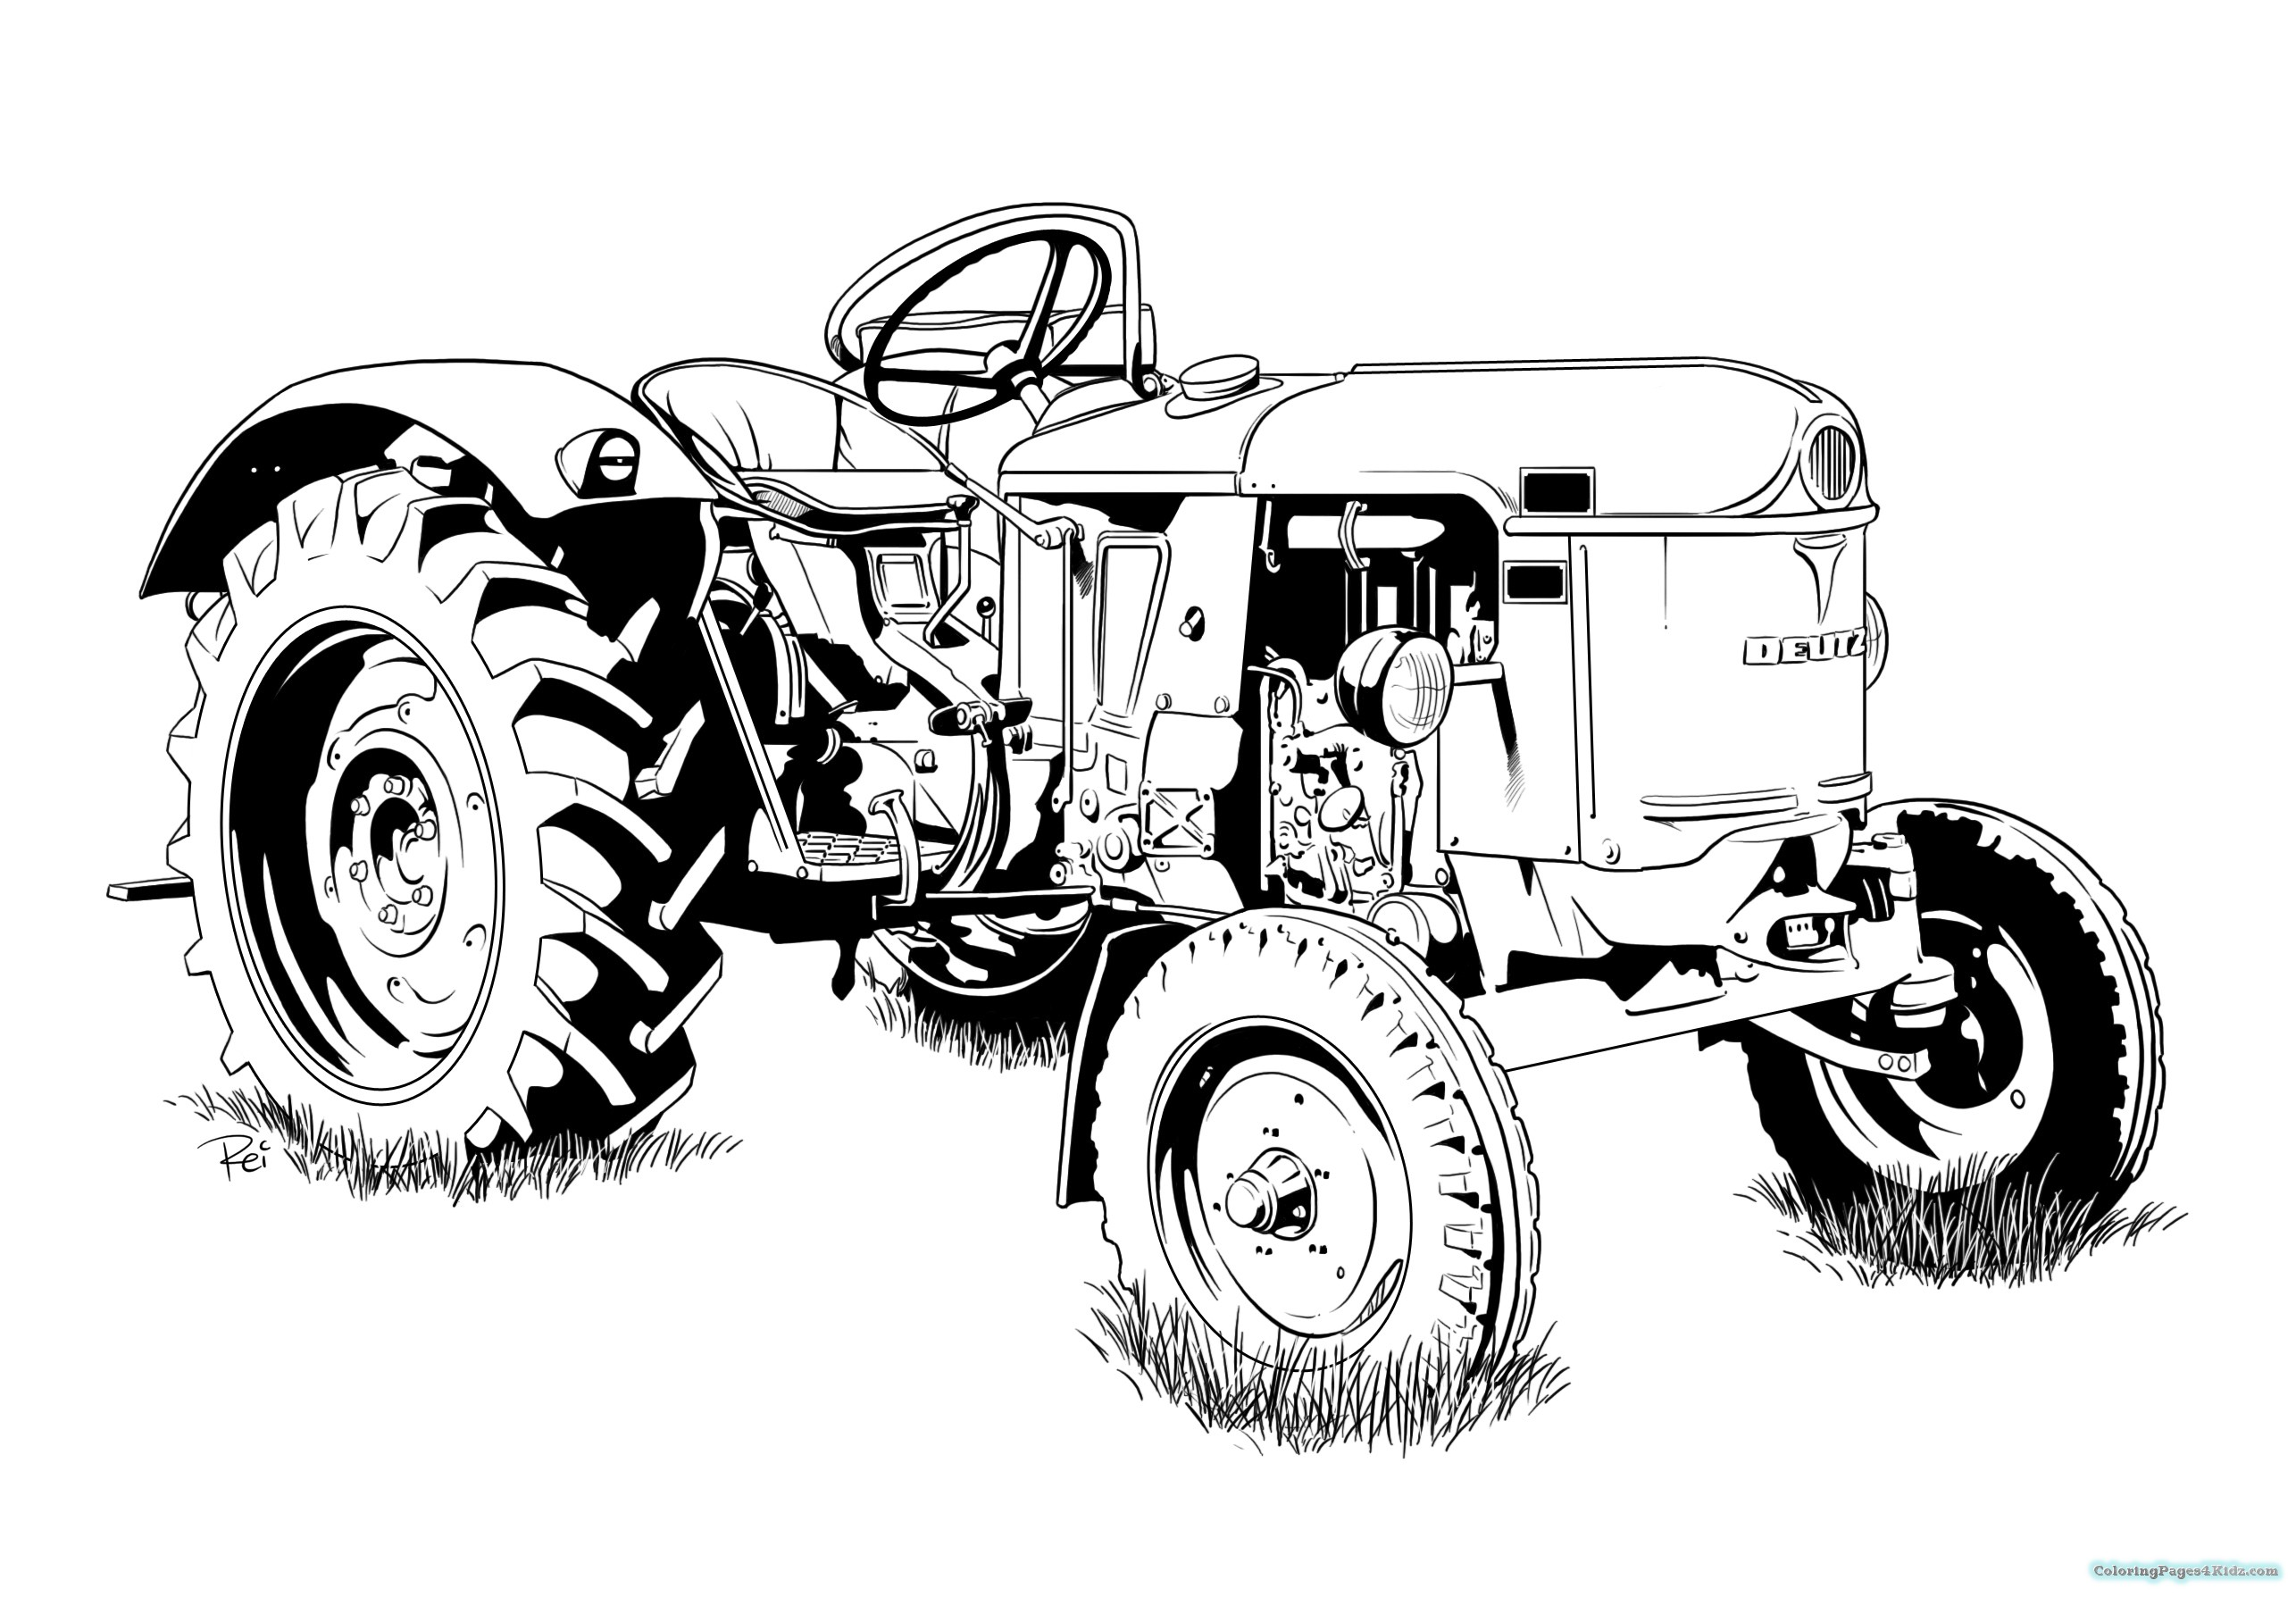 tractor pictures to colour in kids tractor a coloring pages coloring pages for kids pictures tractor in colour to